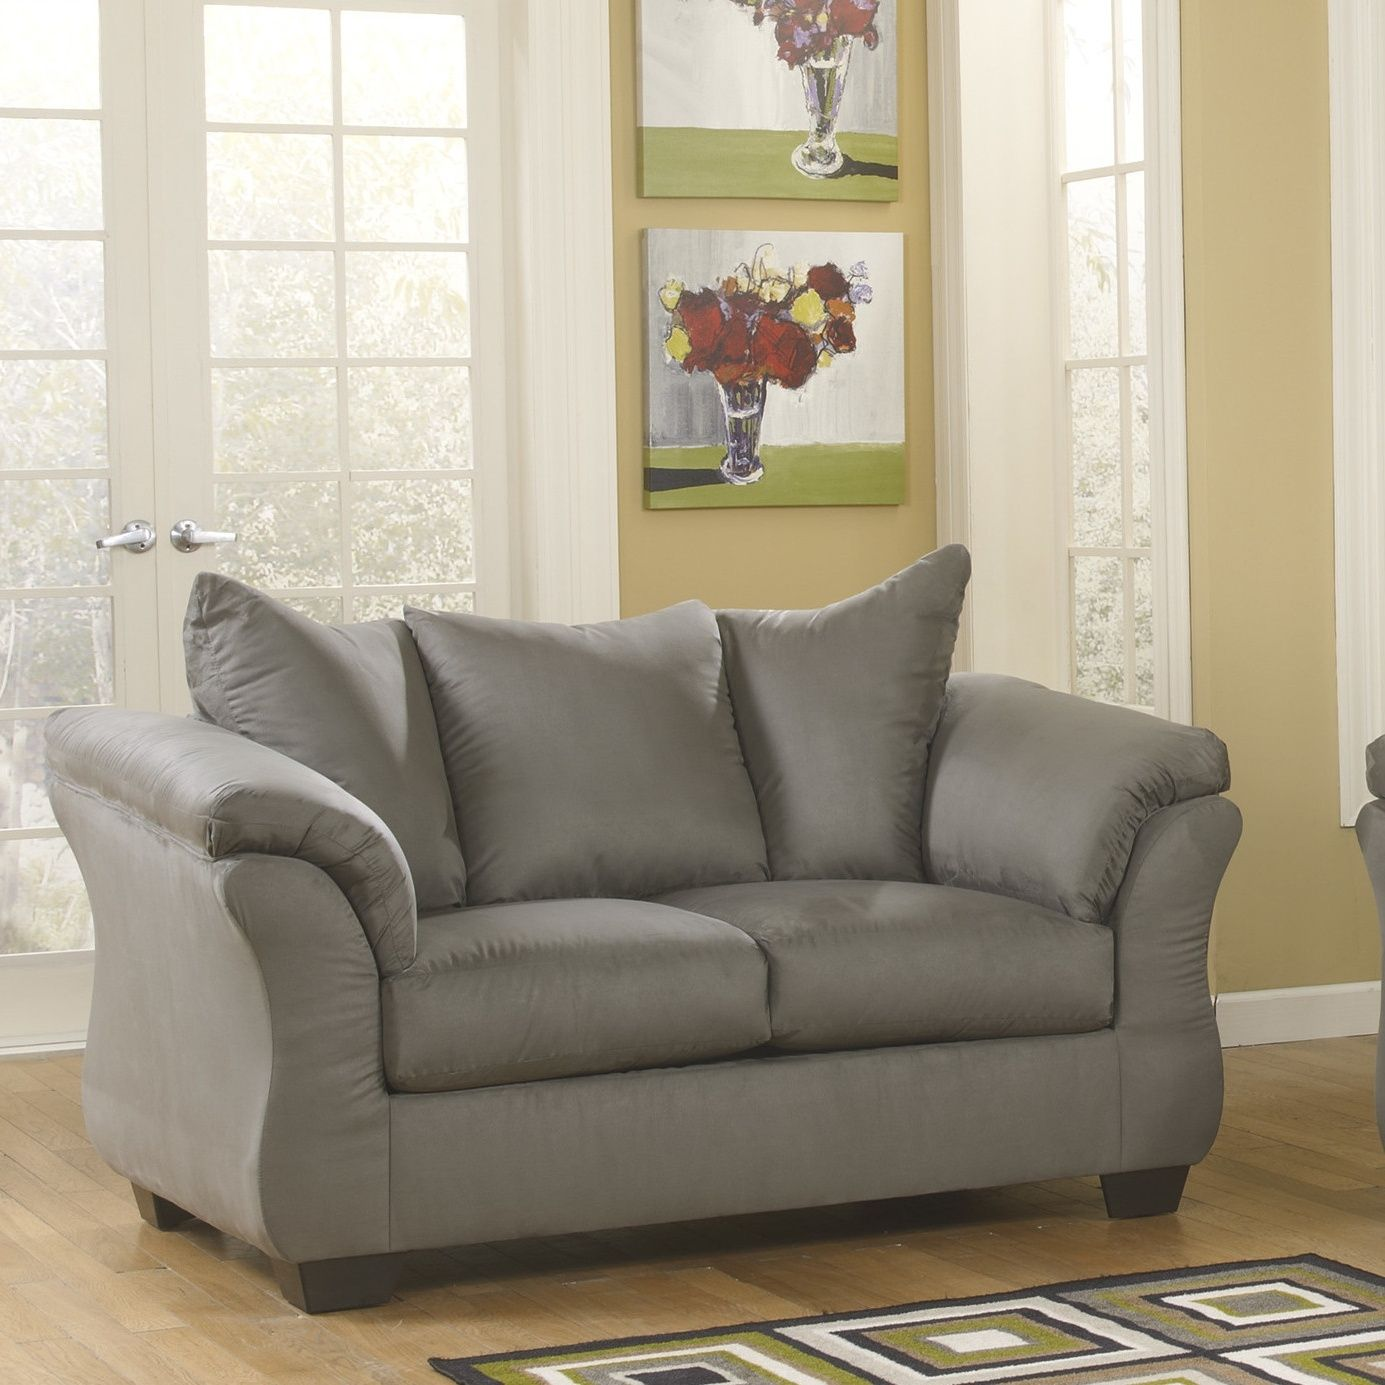 Amazing Cheap Couches For Sale Under $100